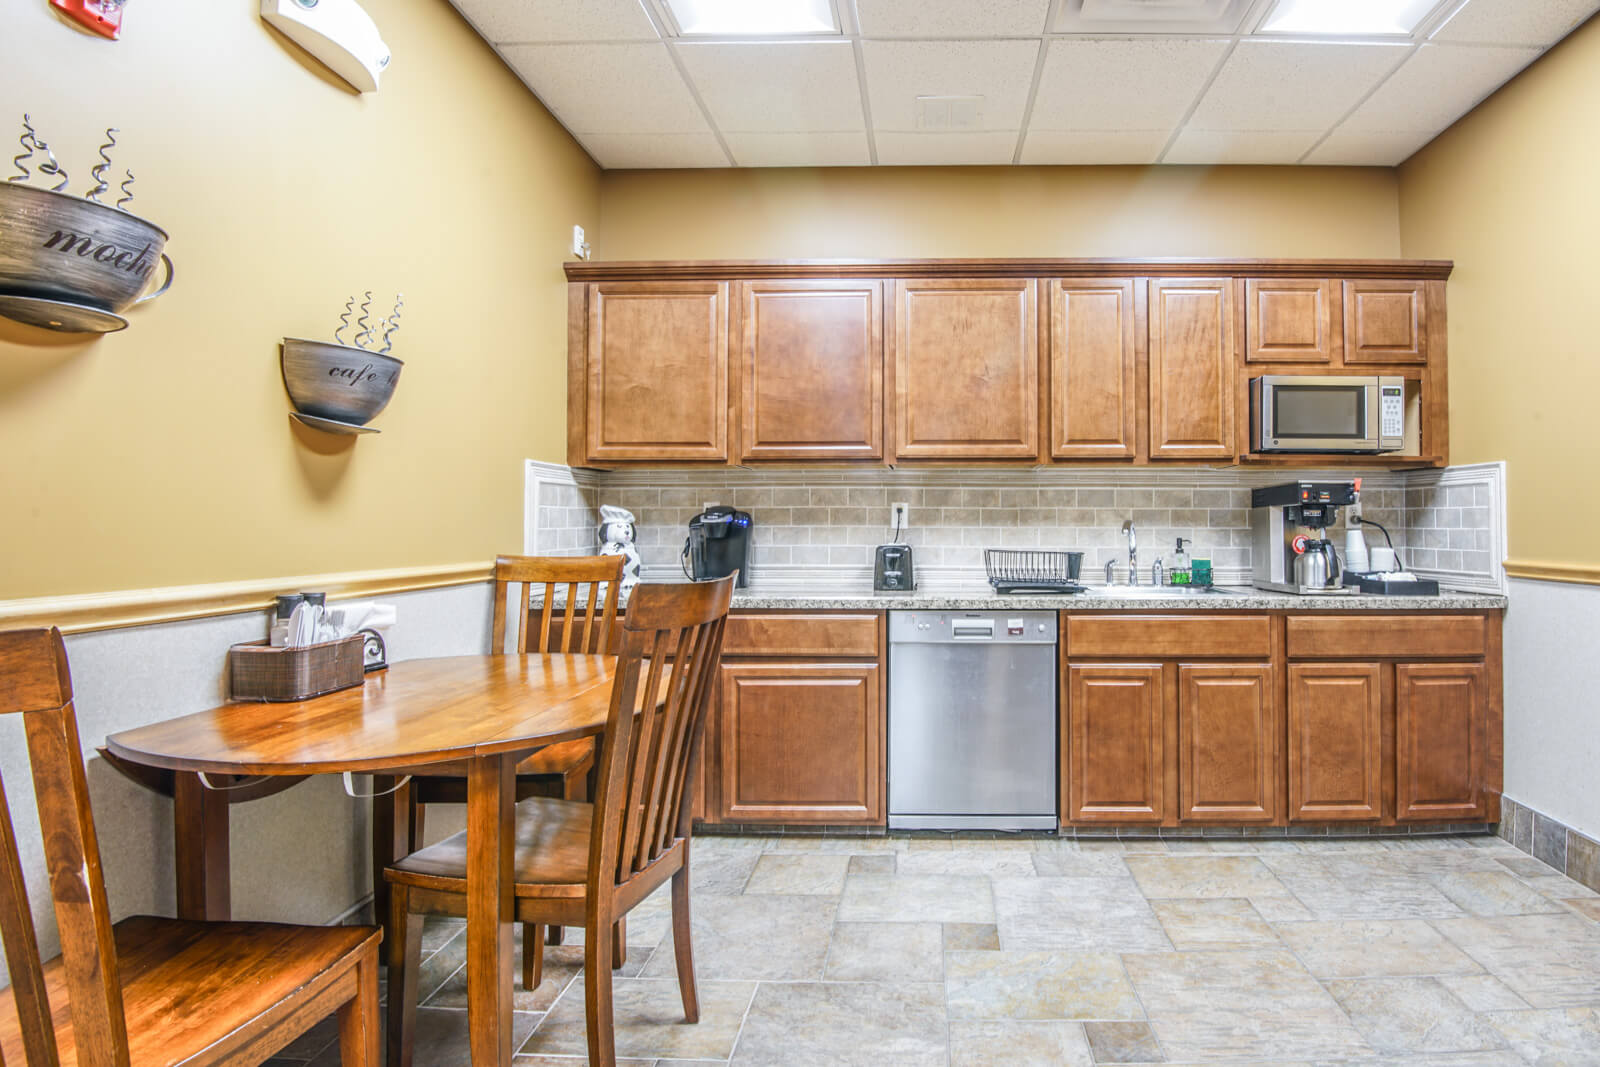 Montville shared kitchen